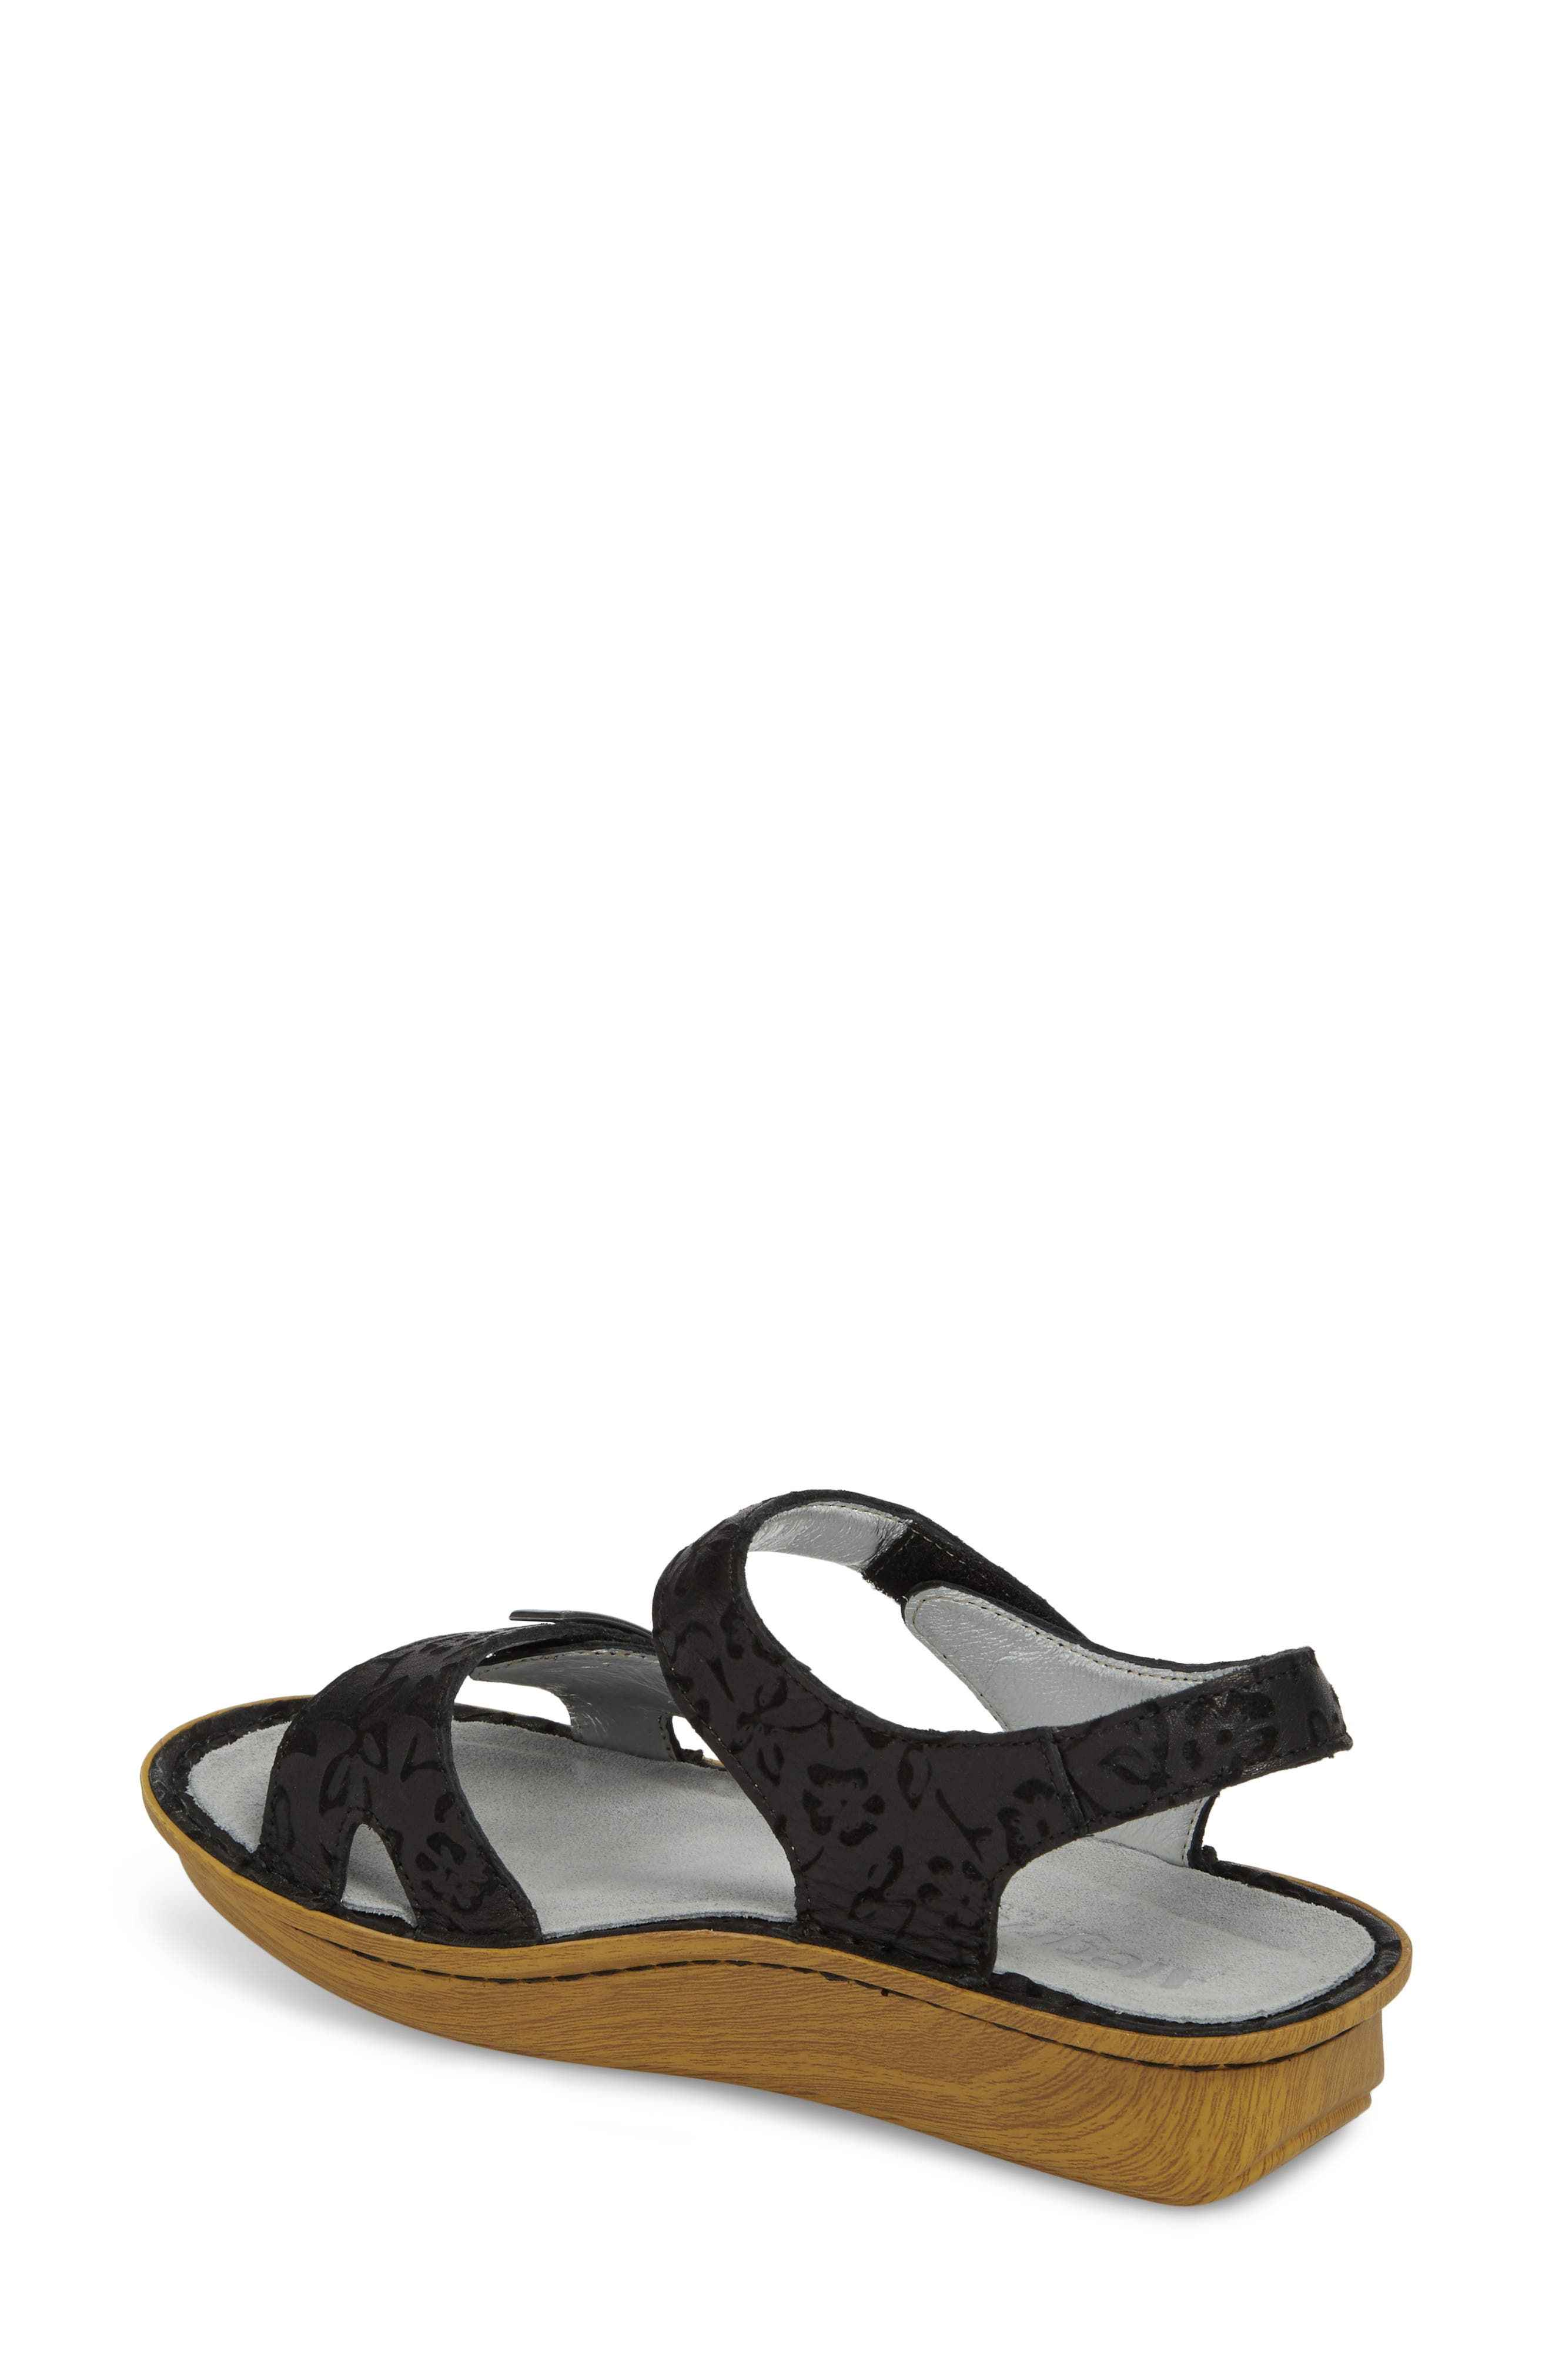 ALEGRIA, Vienna Sandal, Alternate thumbnail 2, color, MORNING GLORY BLACK LEATHER